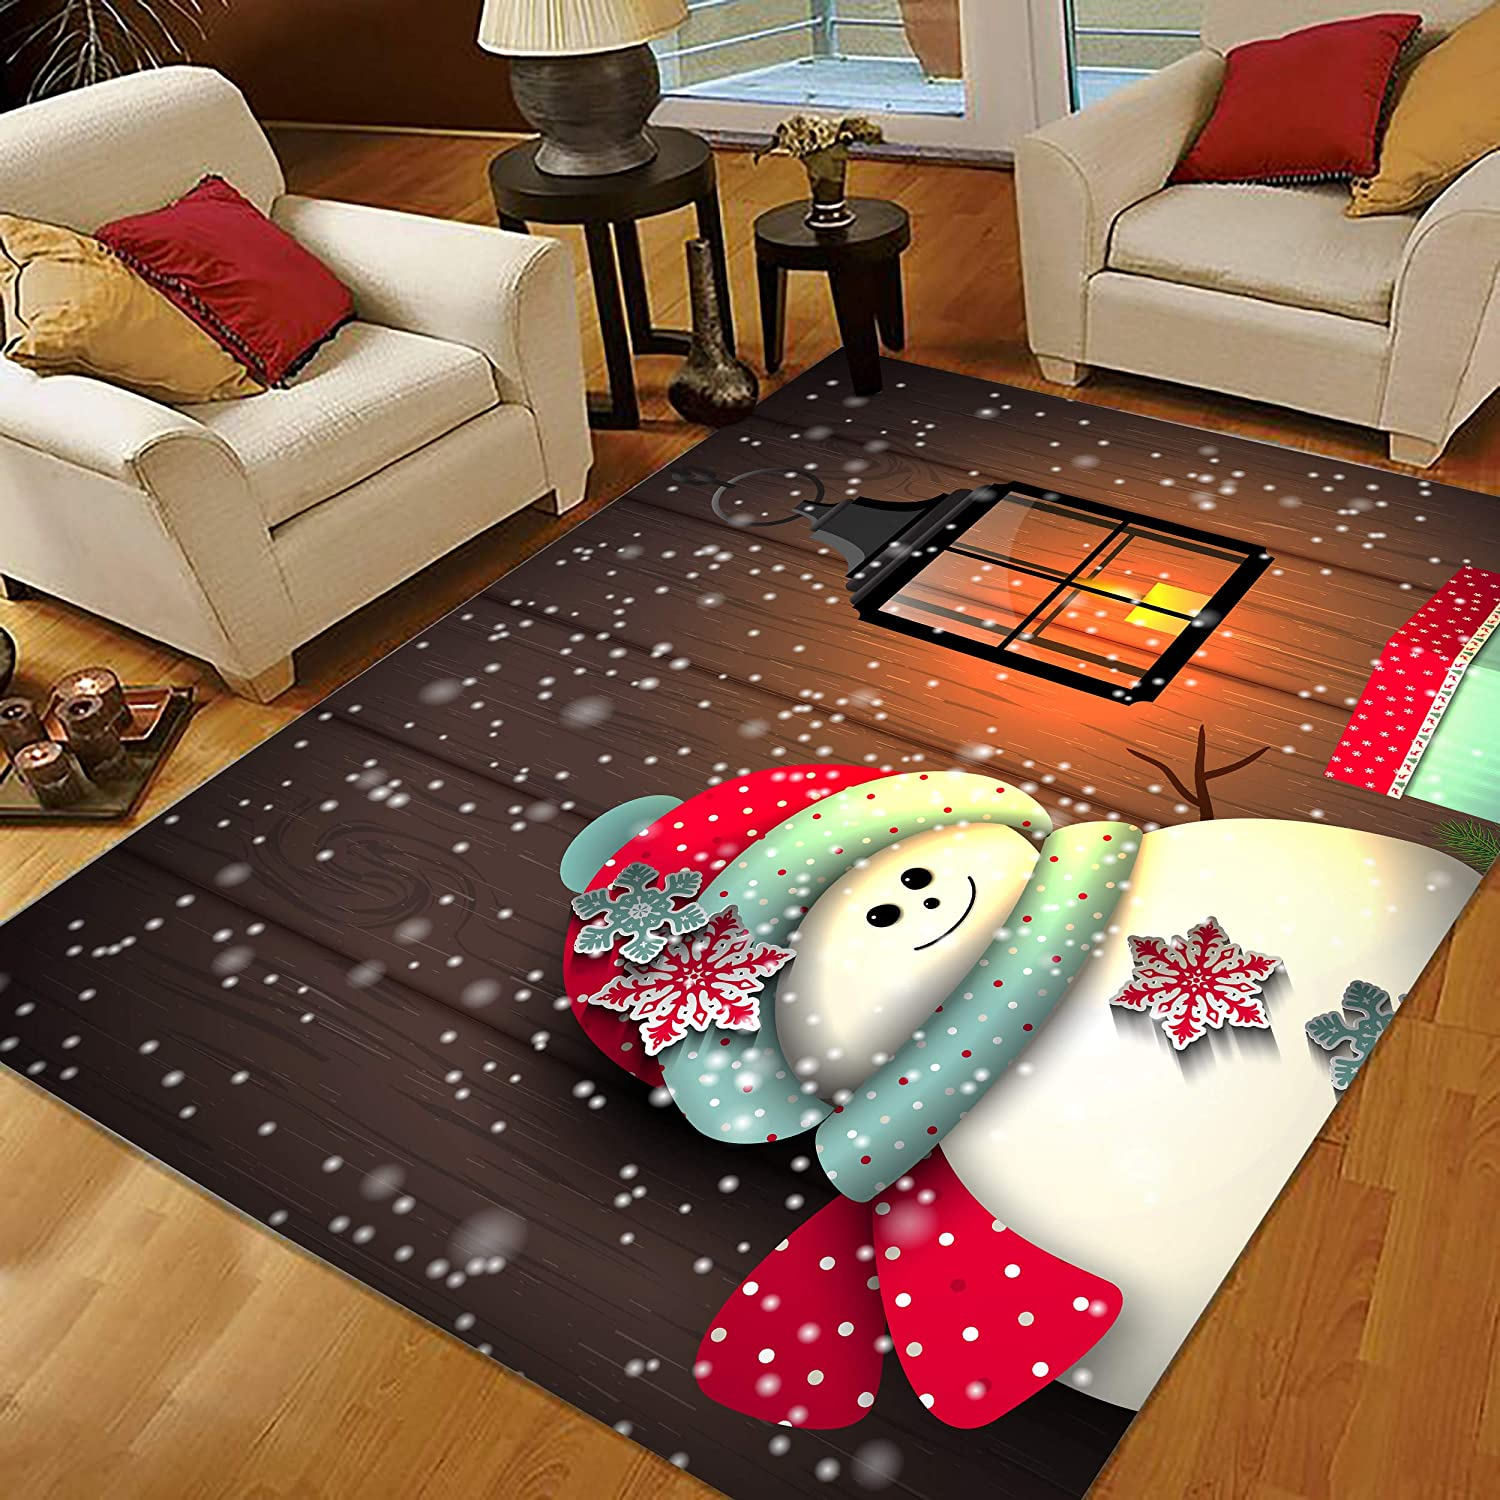 Amazon Com Christmas Rugs 3x5 Snowman Area Rugs Small Rugs For Living Room Bedroom For Holiday Decoration 334475126 Snowman With Vintage Lantern Kitchen Dining